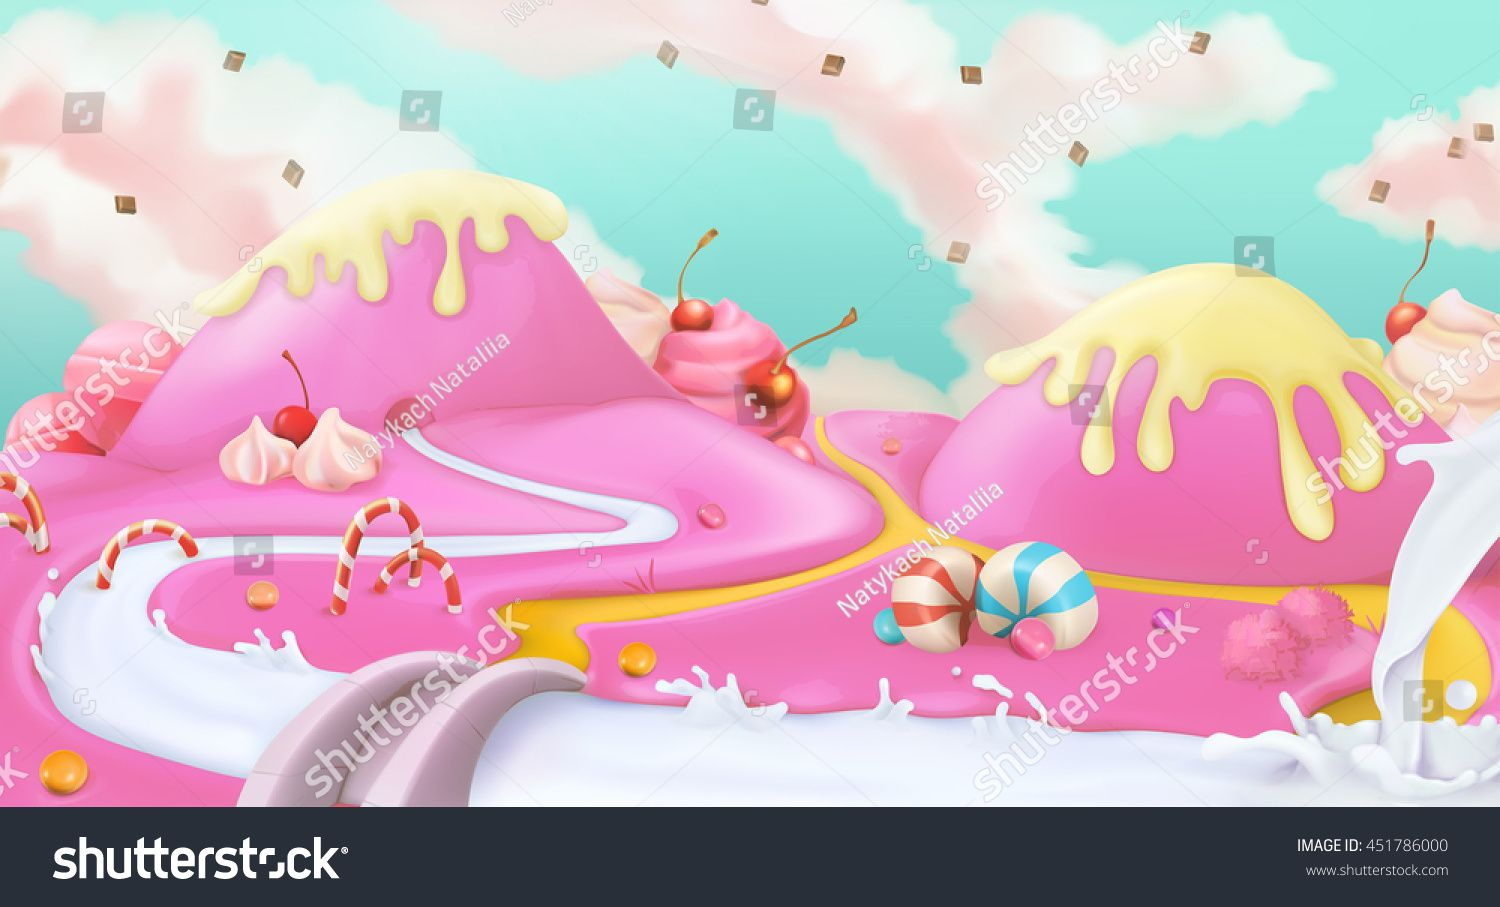 clip art black and white Land pink sweet d. Vector candy landscape